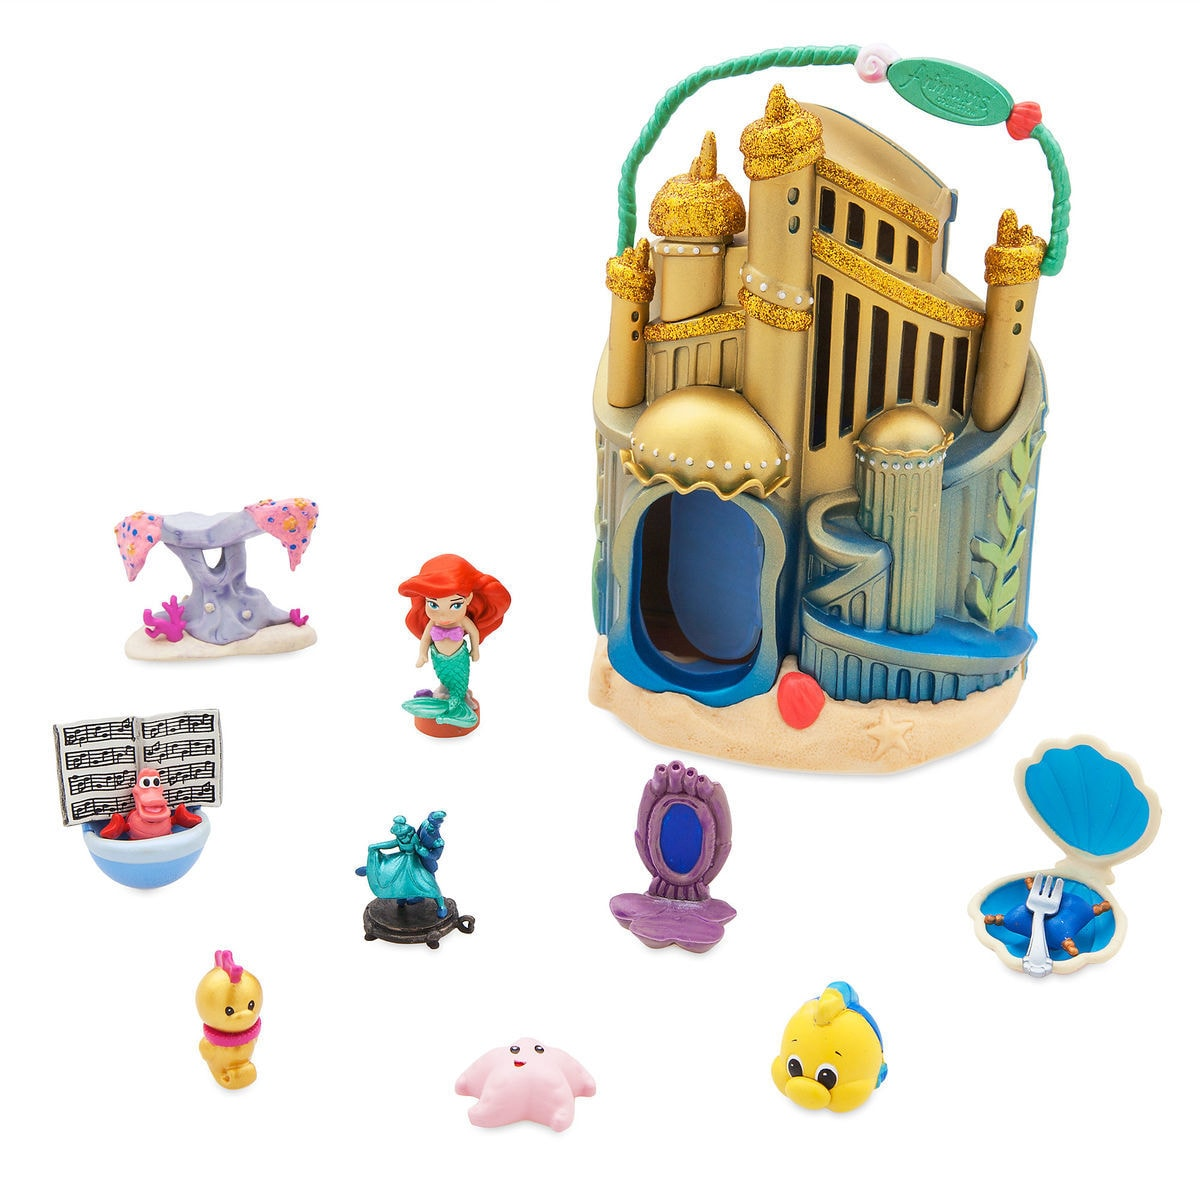 70c44c1de21 Product Image of Disney Animators  Collection Littles Ariel Micro Doll Play  Set   1